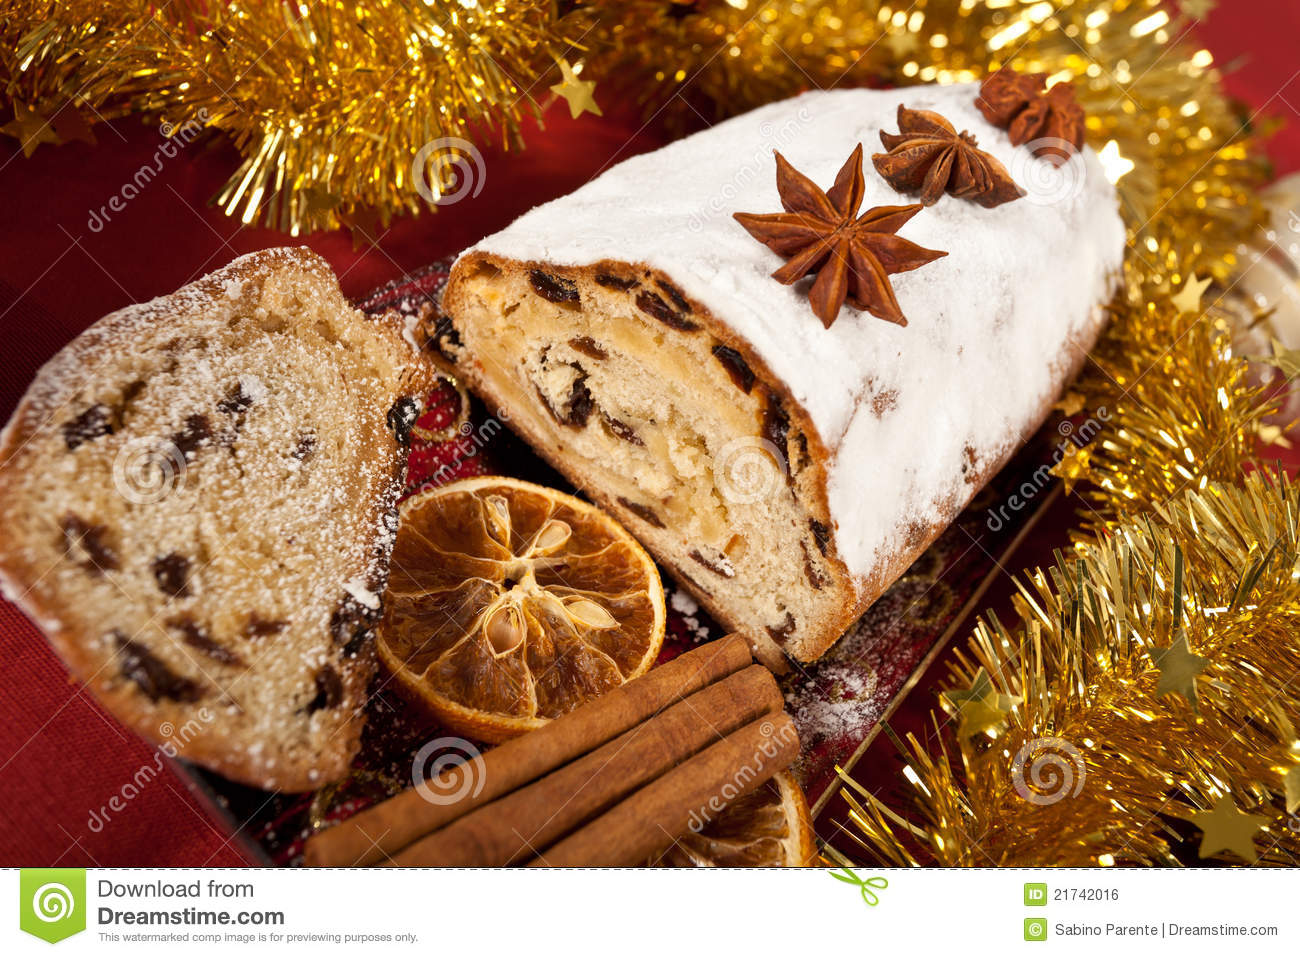 Christmas Stollen Royalty Free Stock Image - Image: 21742016